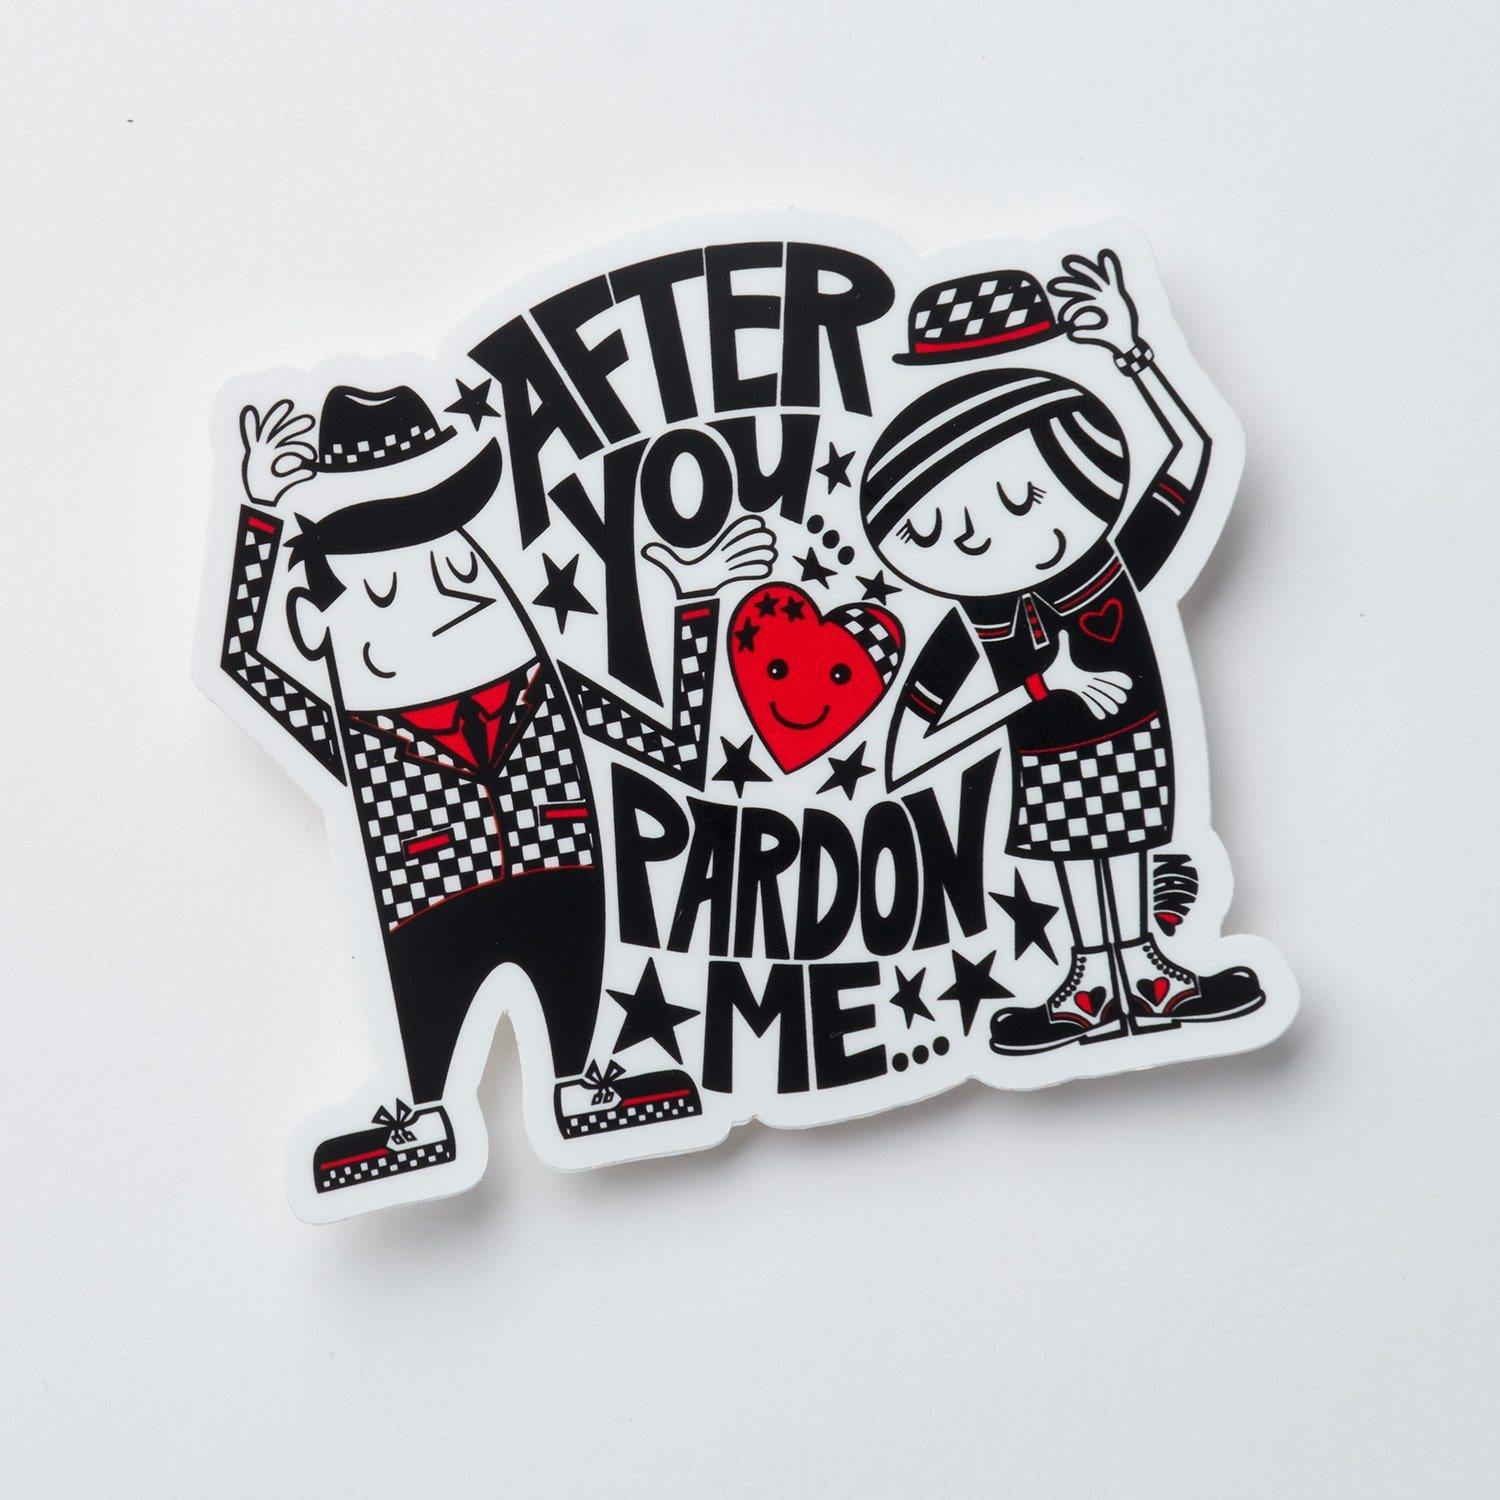 After You/Pardon Me - Vinyl Sticker | Fine Art and Limited Edition Prints | The Art Of Nan Coffey